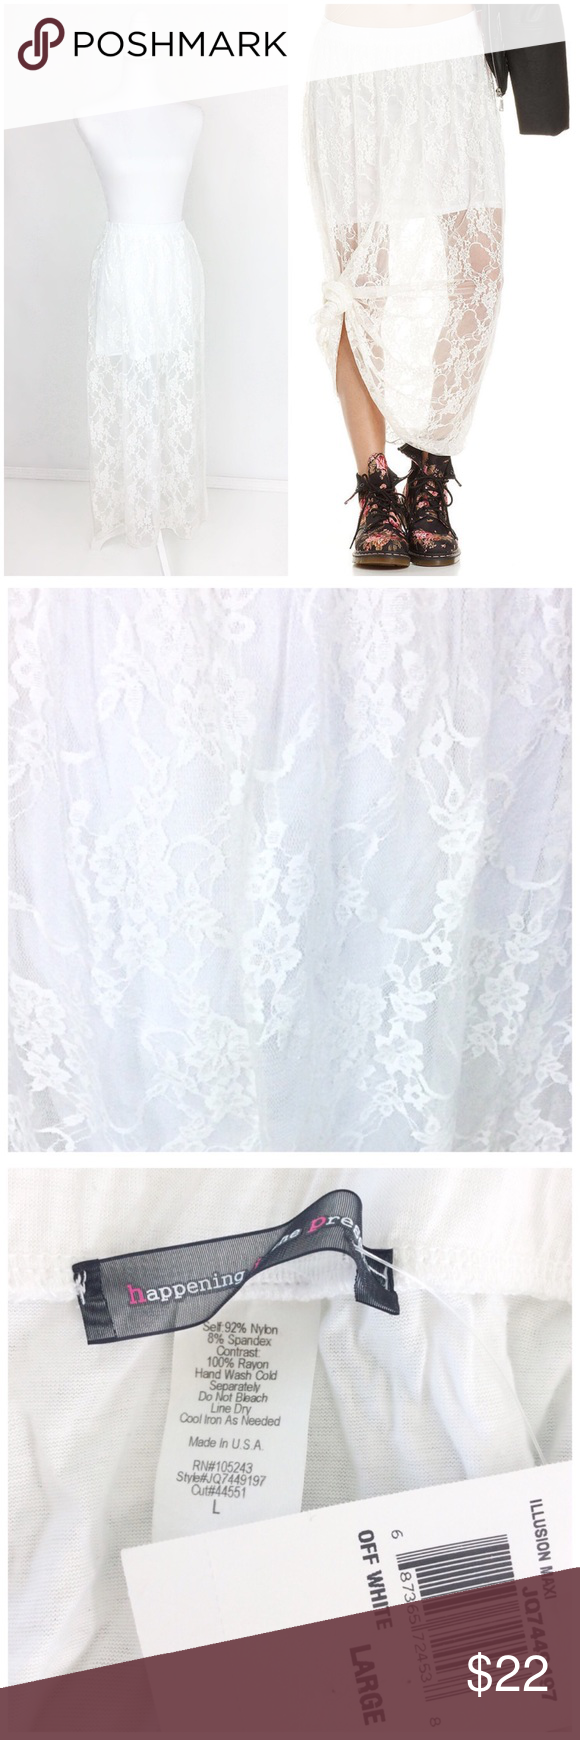 """Must Have! Lace Illusion Maxi Medium/Large Off white lace illusion maxi skirt. Lined in soft knit to above the knee. Soft lace. Very light and airy. Elastic waist. Great wardrobe staple wear with almost anything. Dress it up or down. Wear it to the beach or to dinner. Lightweight and great to pack for your summer adventures. Wear it when transitioning into fall with boots and jackets. Hand wash. Could fit a medium as well as a large. Laying flat the waist measures 14 1/2"""" across the waist…"""